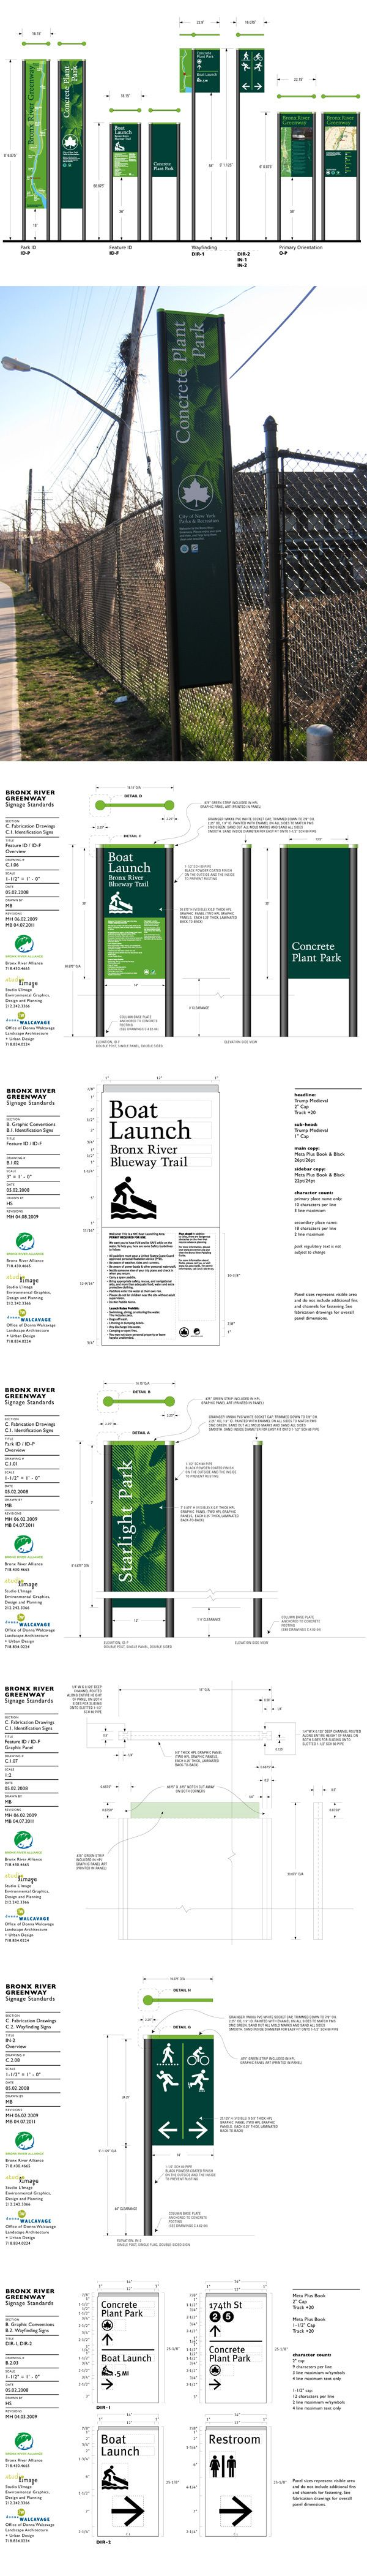 Bronx River Greenway Signage by Michael Benvenga, via Behance